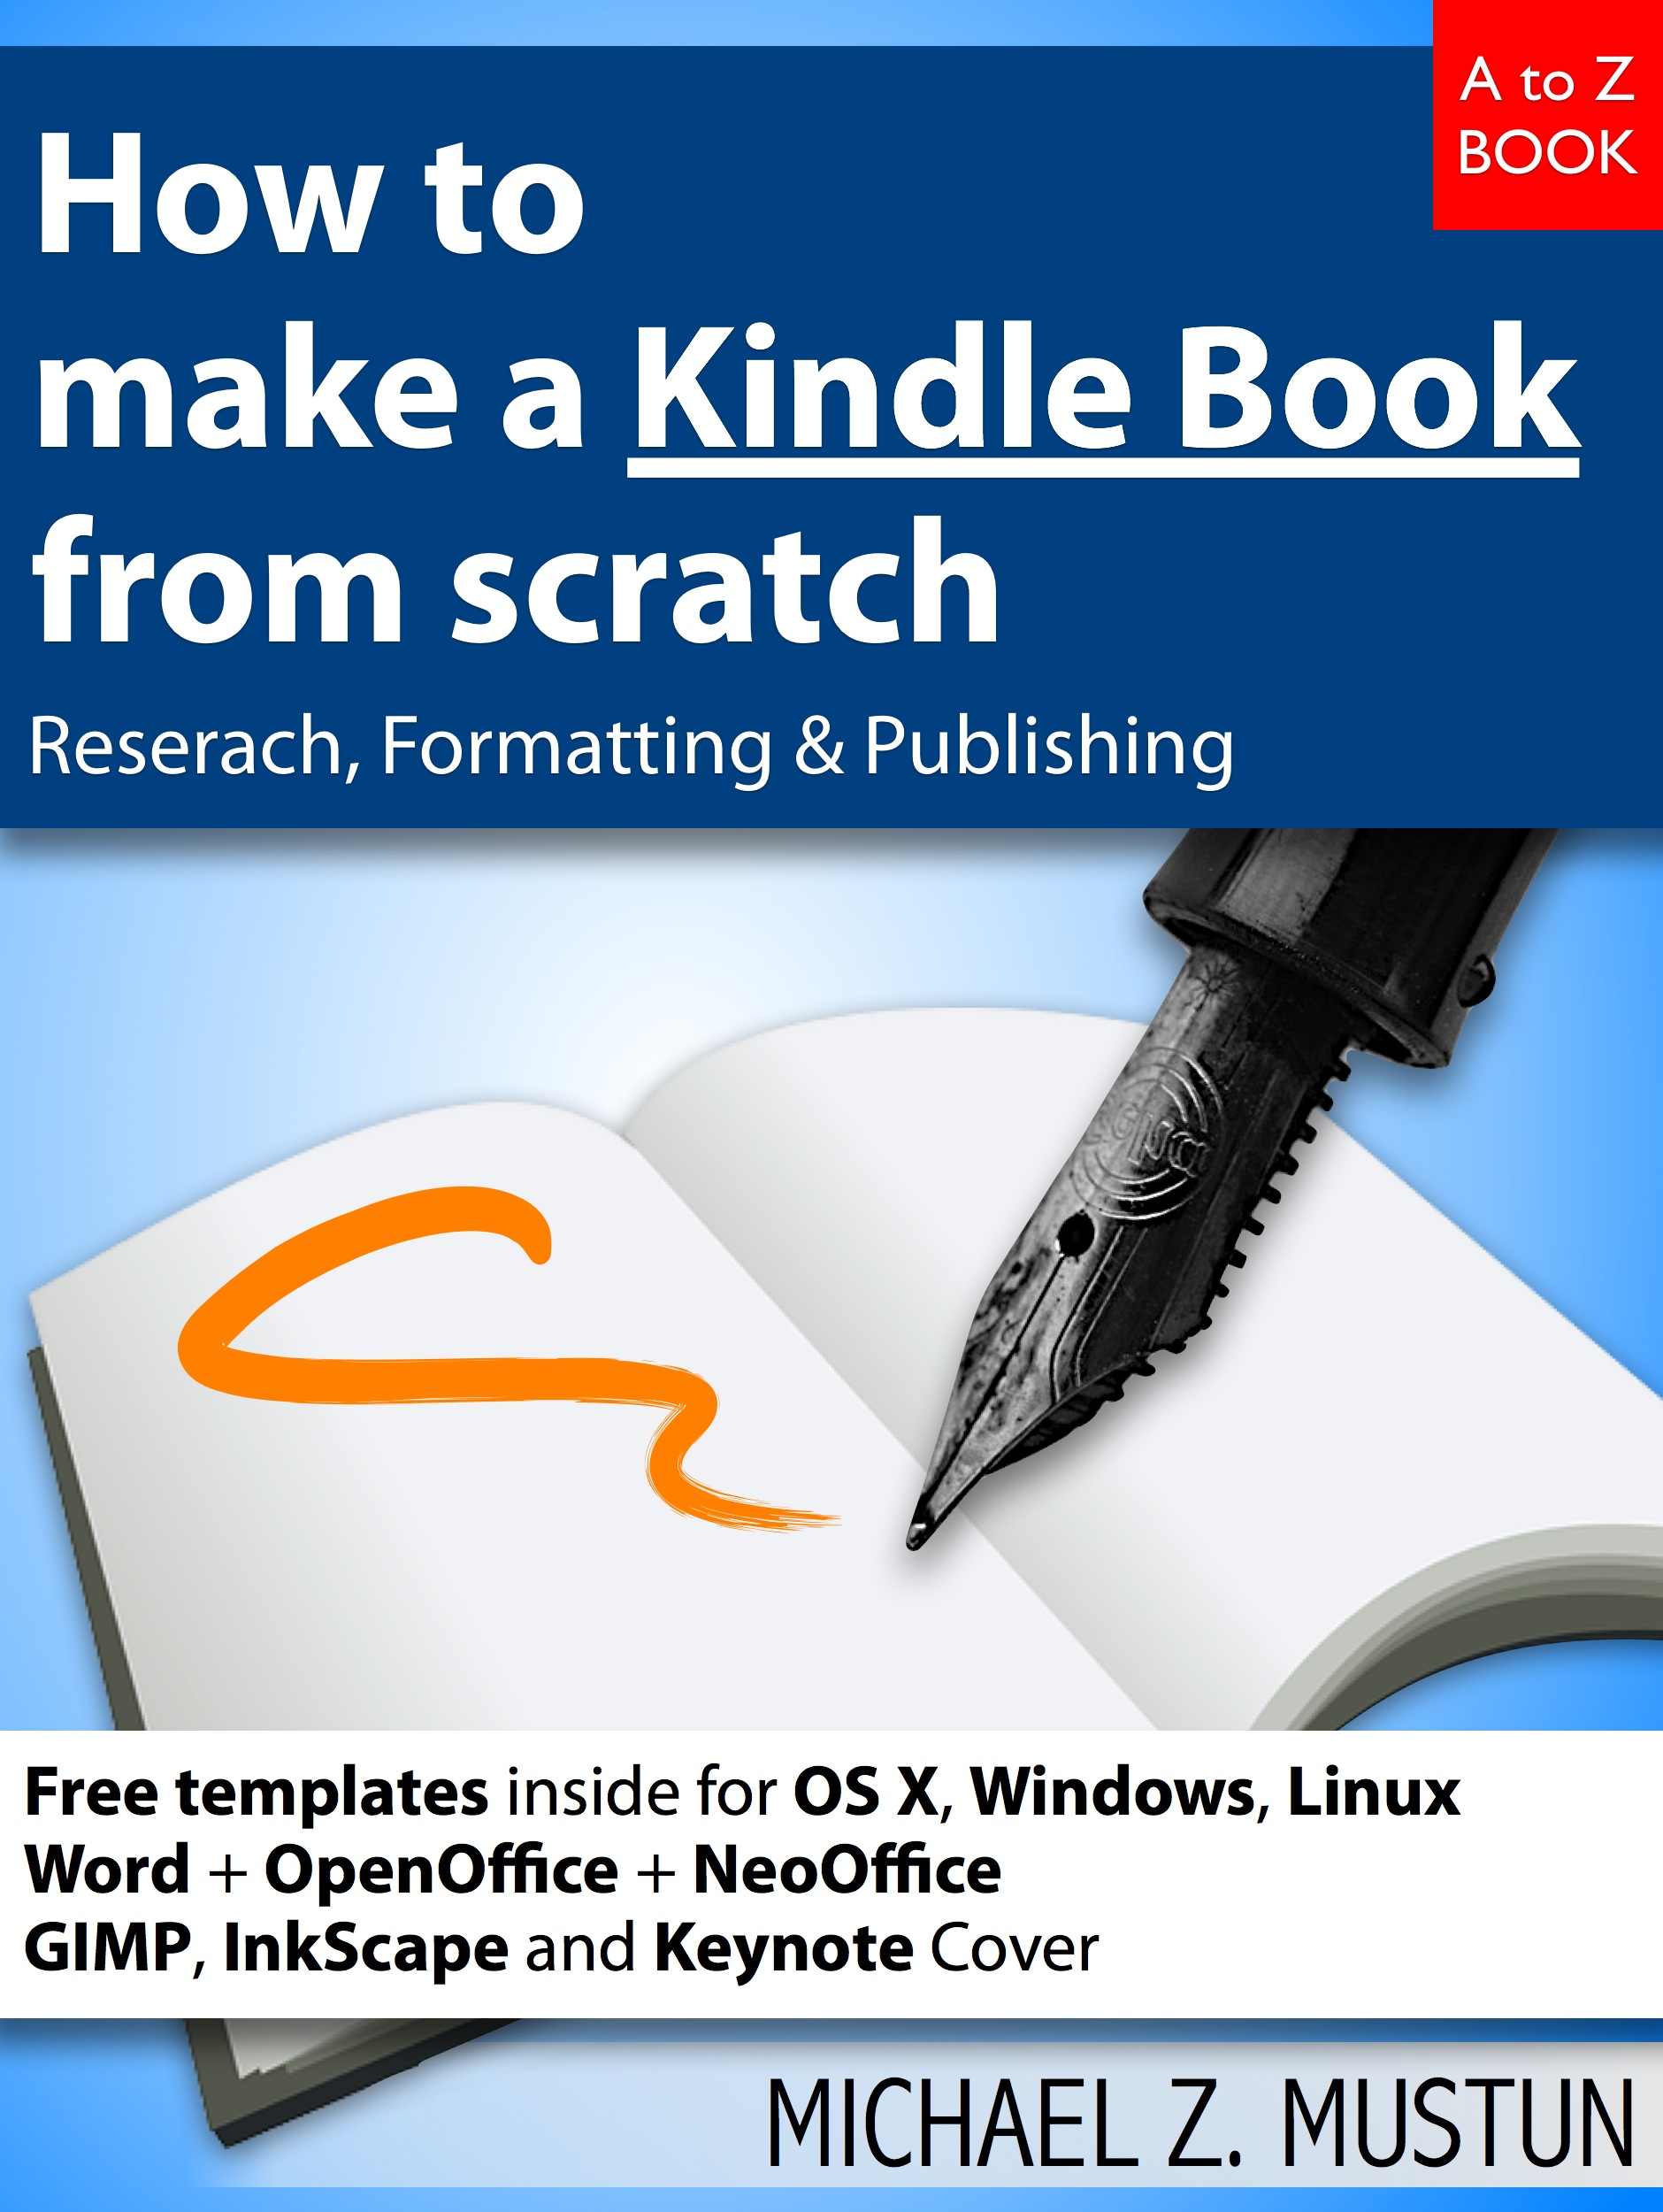 How to make a Kindle Book from scratch - Research, Formatting ...